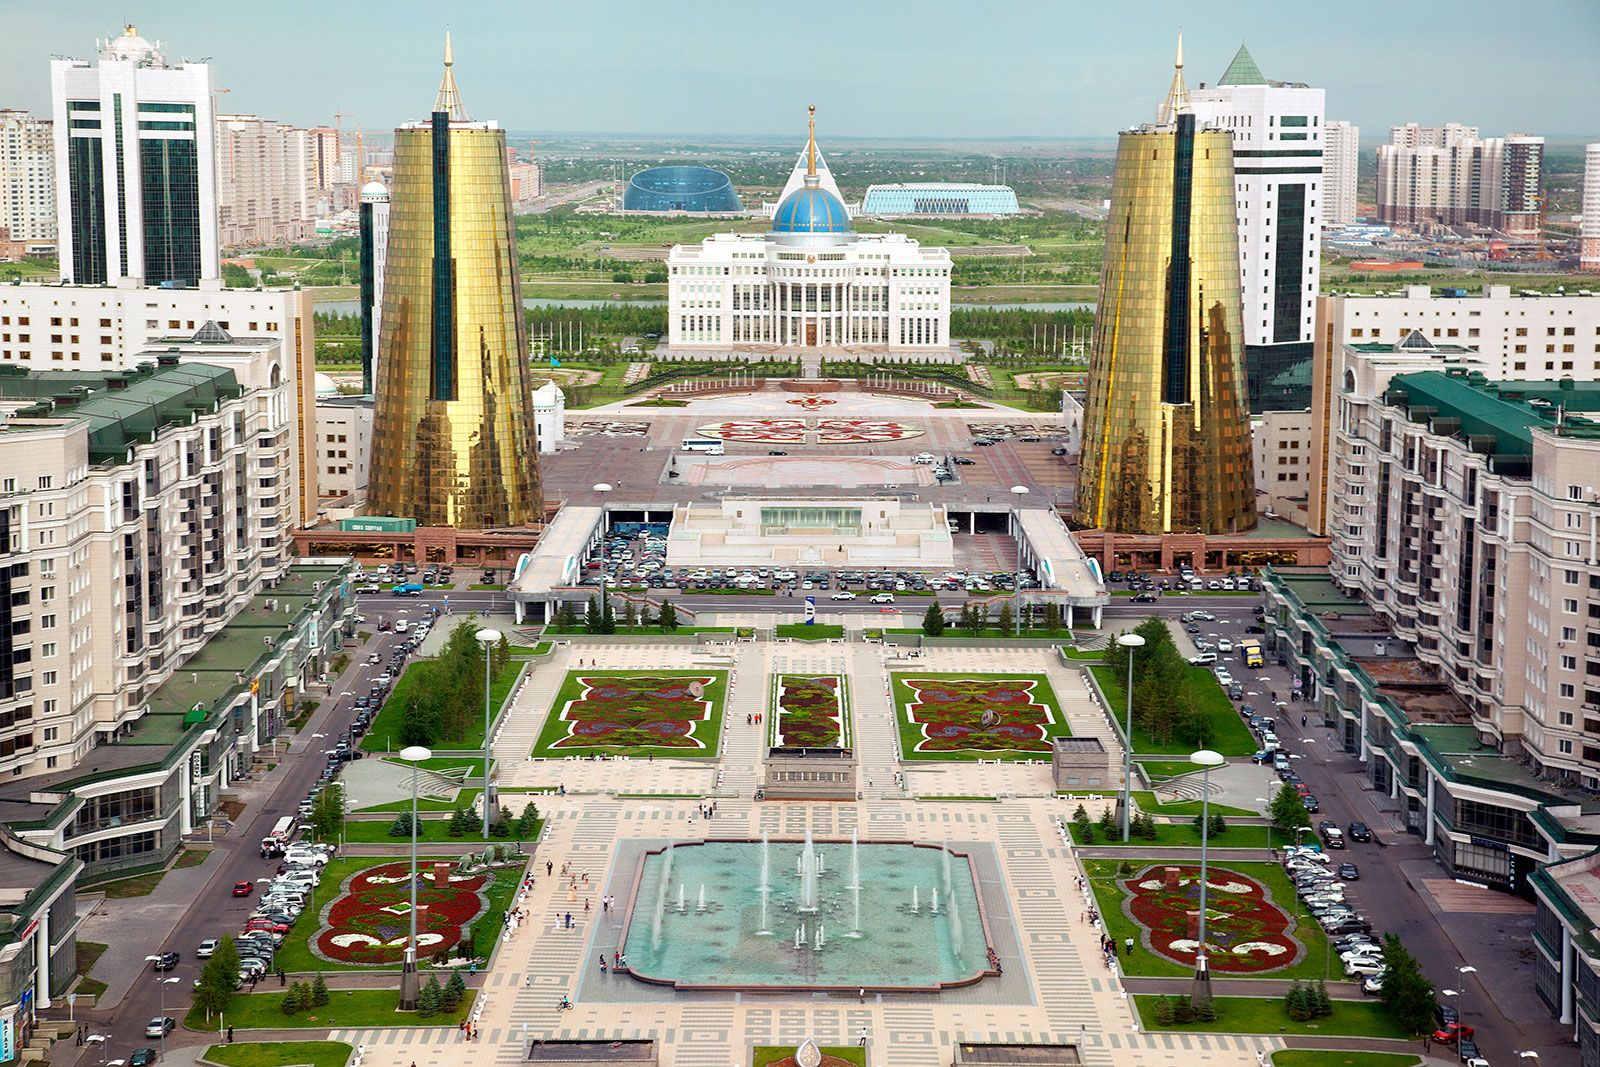 A Tale Of Two Cities Ryan Koopmans Photographs The Old And New Capitals Of Kazakhstan Futuristic Architecture City Neo Baroque